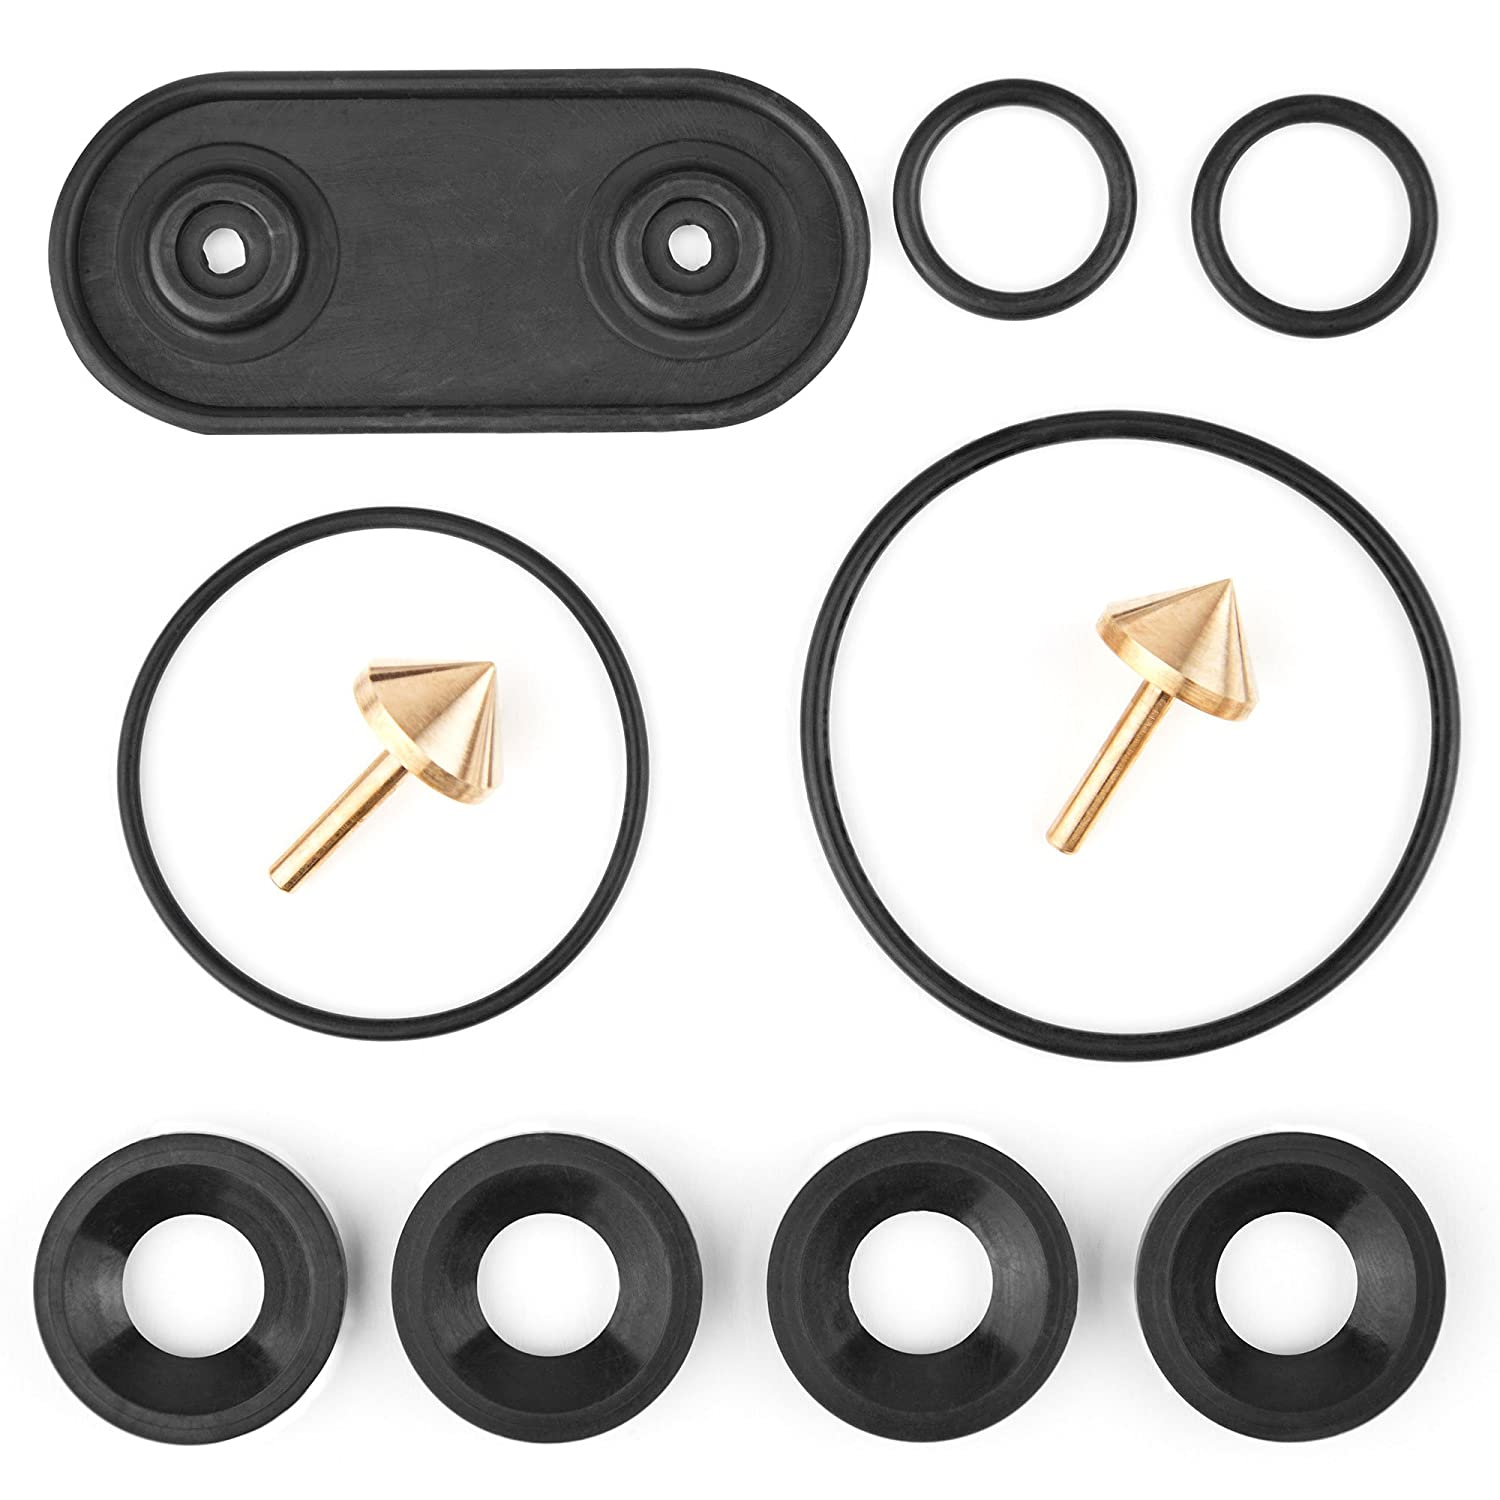 Heater Valve Repair Kit Compatible with Mercedes-Benz Cars- Set of Heater  Repair Parts for Self-Repair W140, C140 - Full Compliance with Original